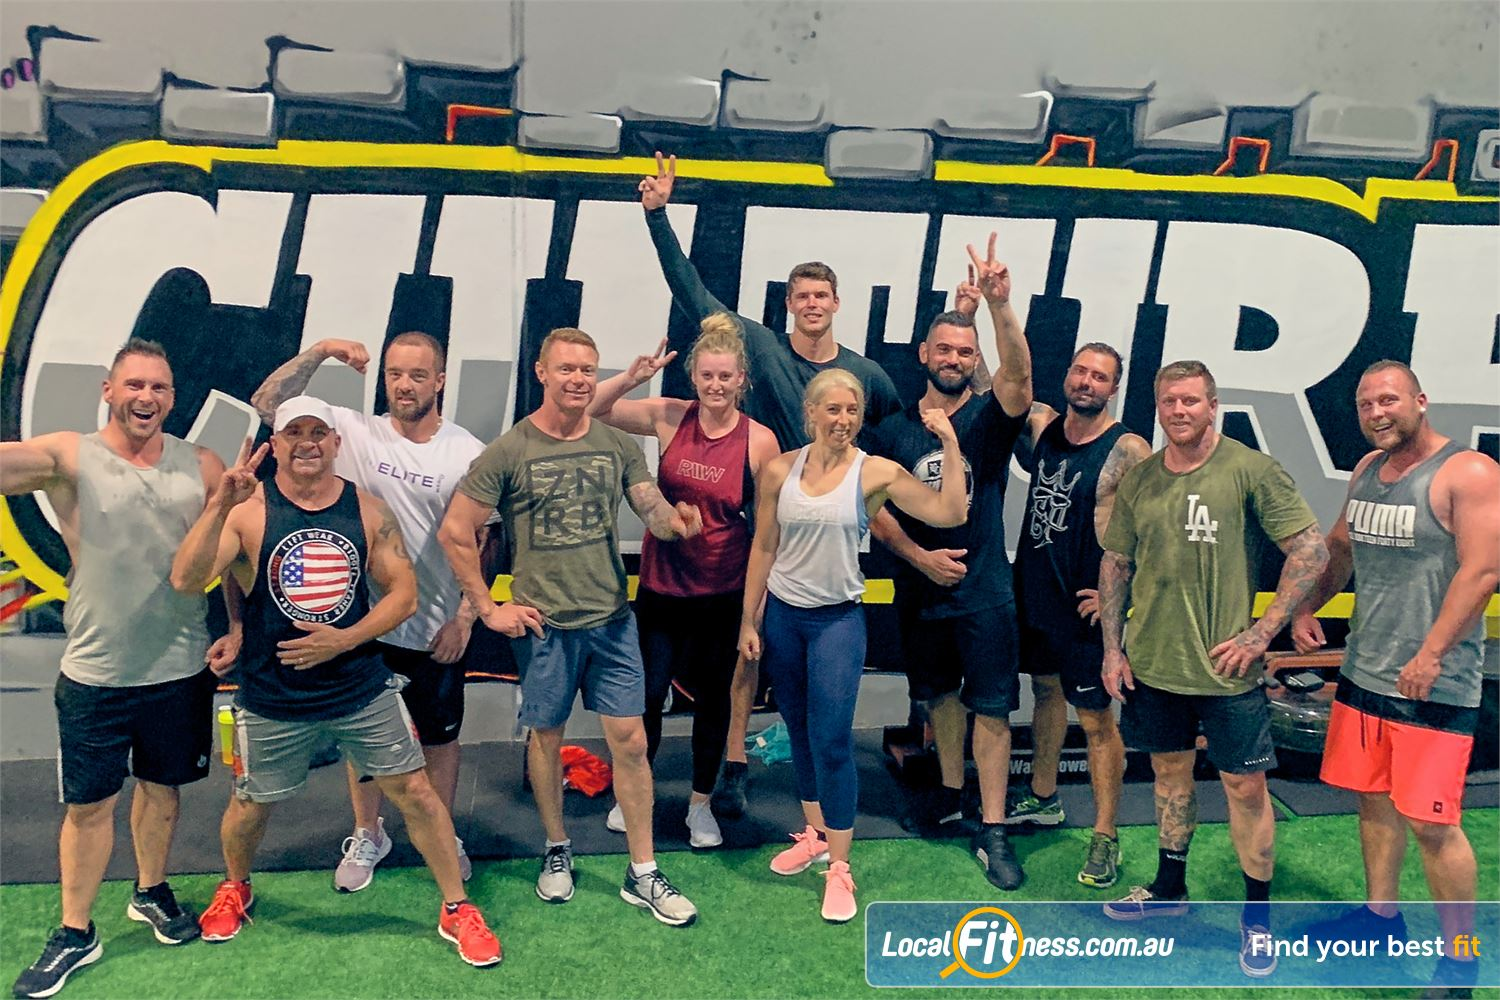 Culture 24:7 Wanneroo Enjoy the culture of training with like-minded exercisers.